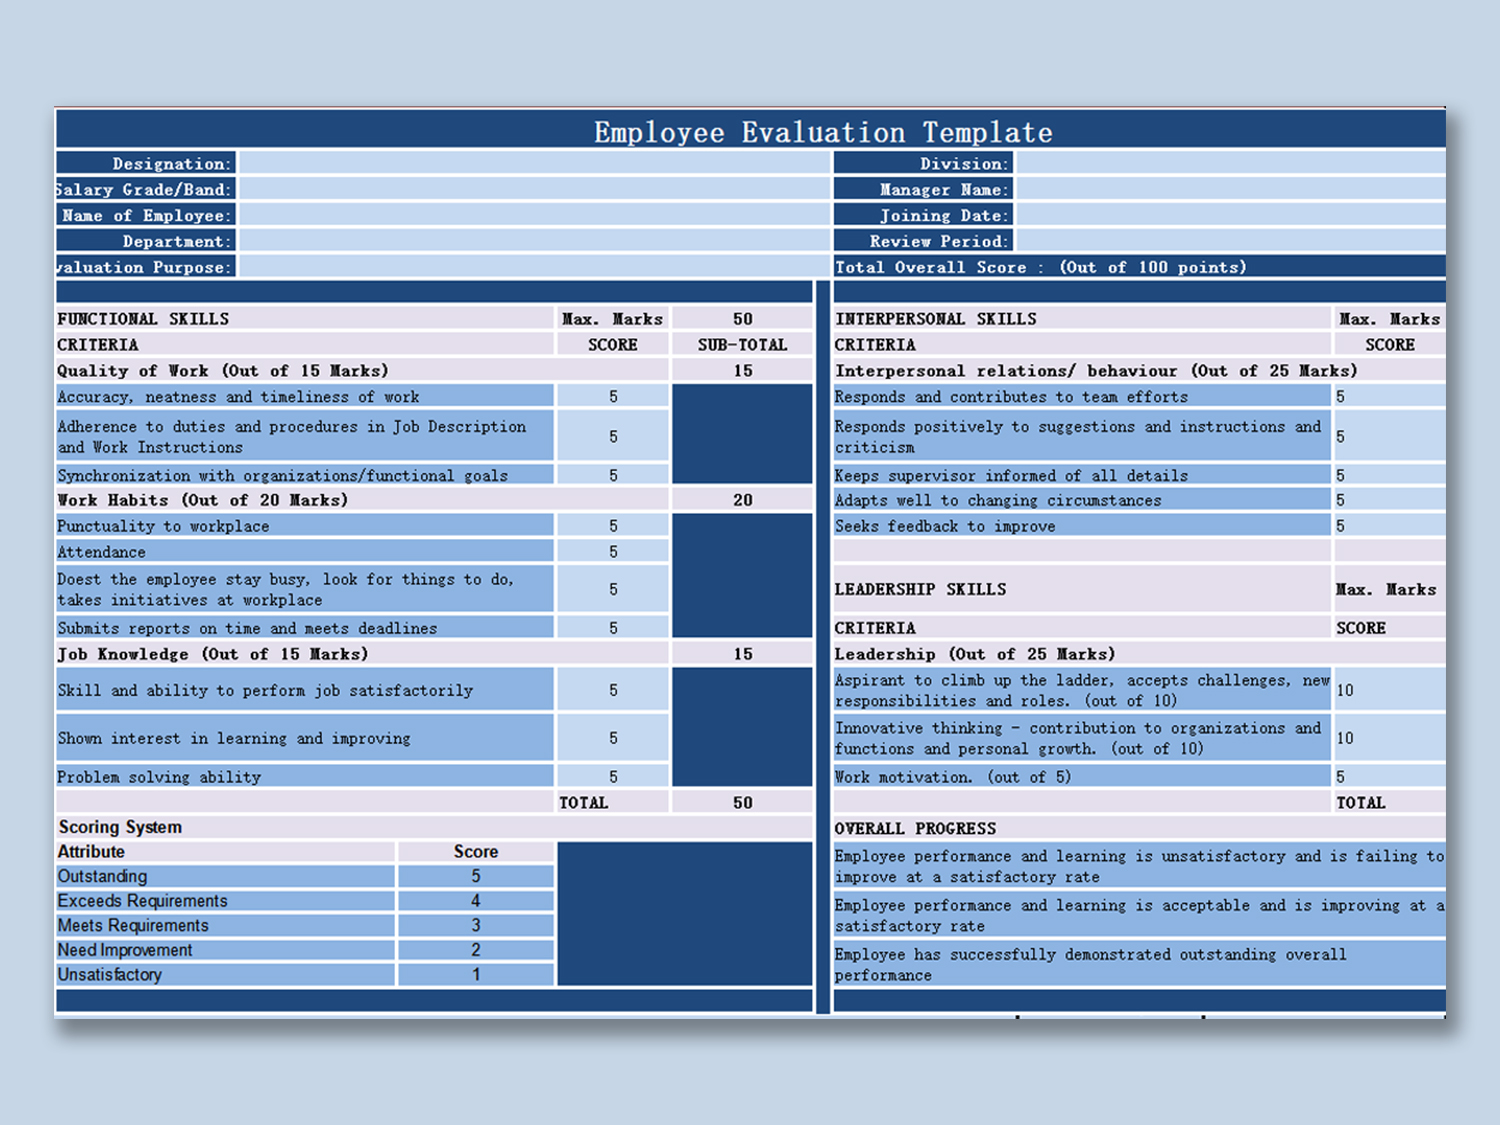 Employee Spreadsheet Template from d4z1onkegyrs5.cloudfront.net